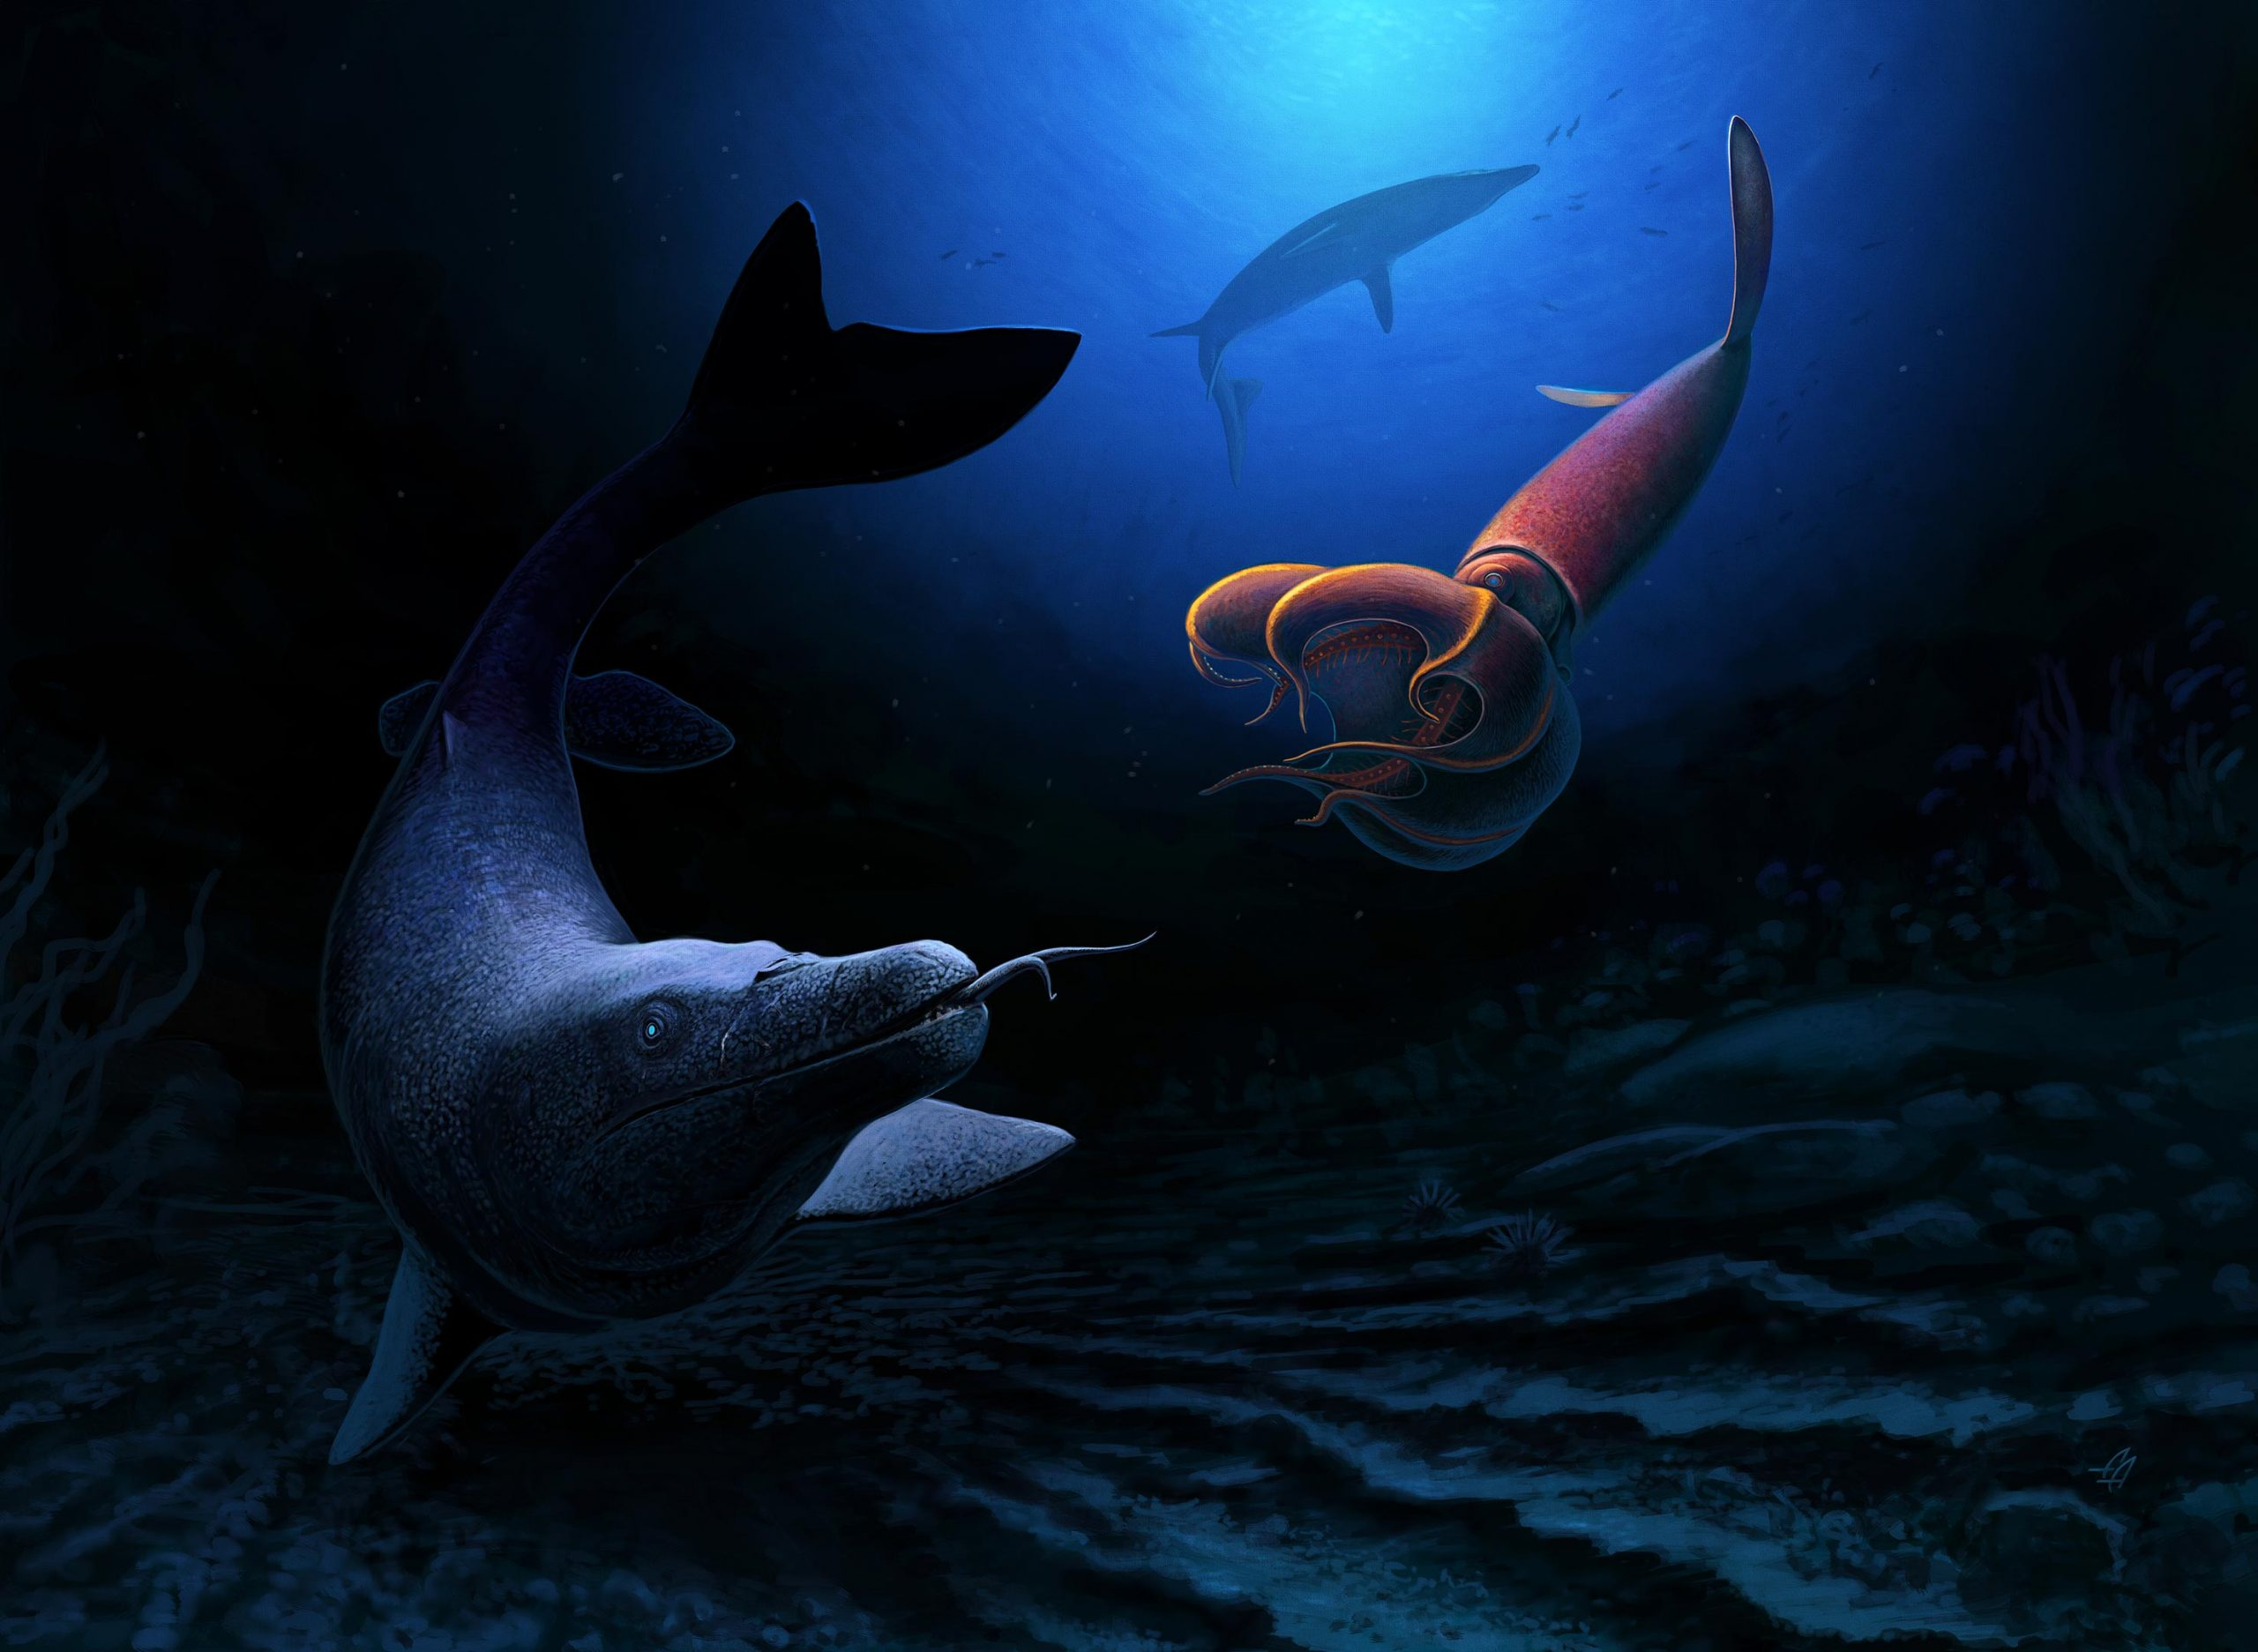 Giant Sea Lizard Grew Up to 26 Feet Long – Shows Diversity of Life Before Asteroid Hit